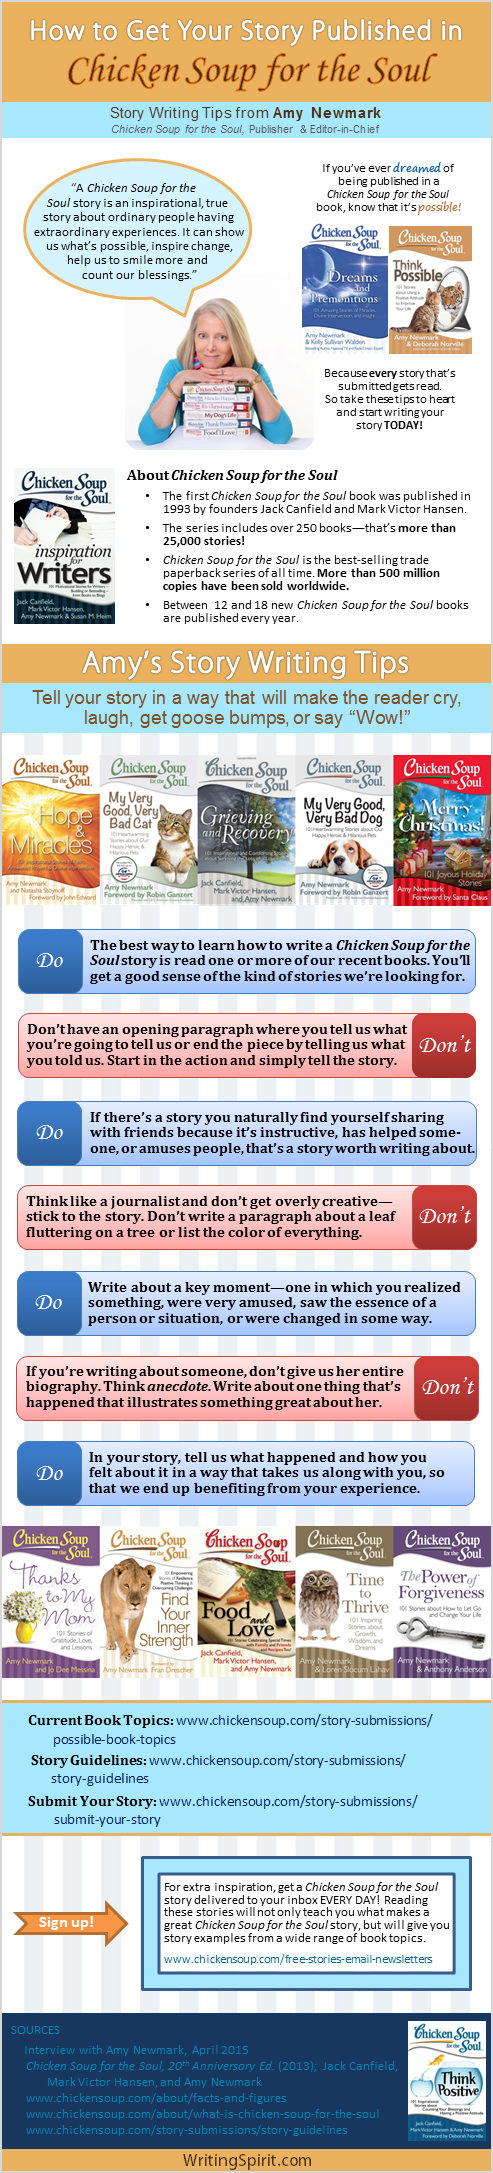 Chicken Soup for the Soul Writing Tips